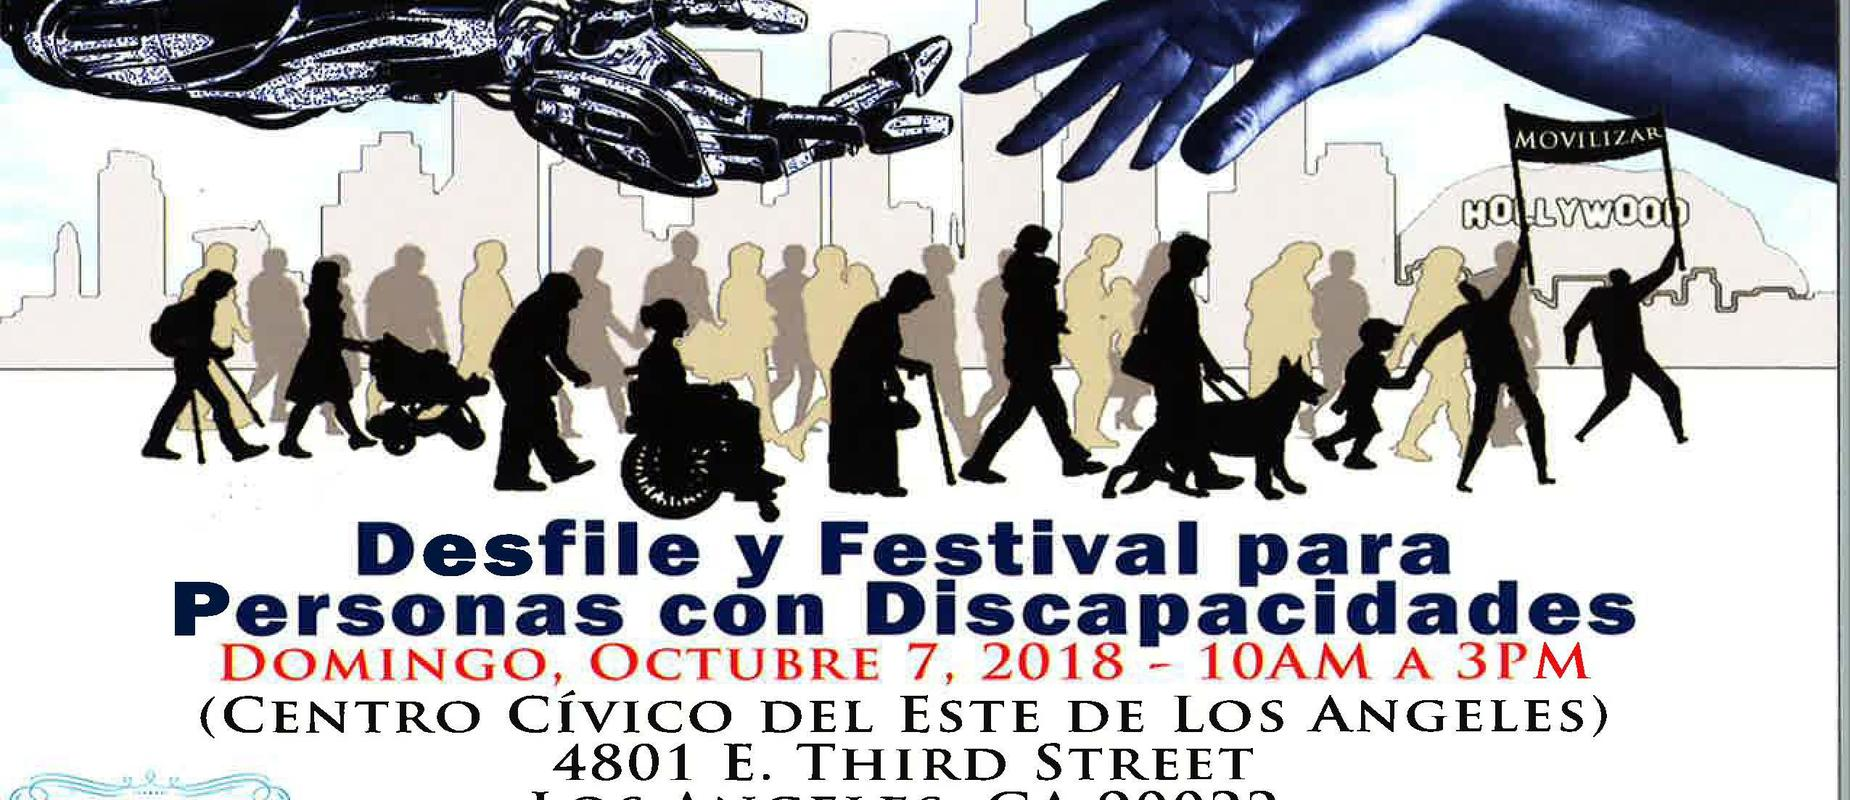 Save the date postcard for Disability Pride Parade and Festival on October 7, 2018 at the East LA Civic Center. Postcard displays silhouette of people marching in a parade(Spanish Version).